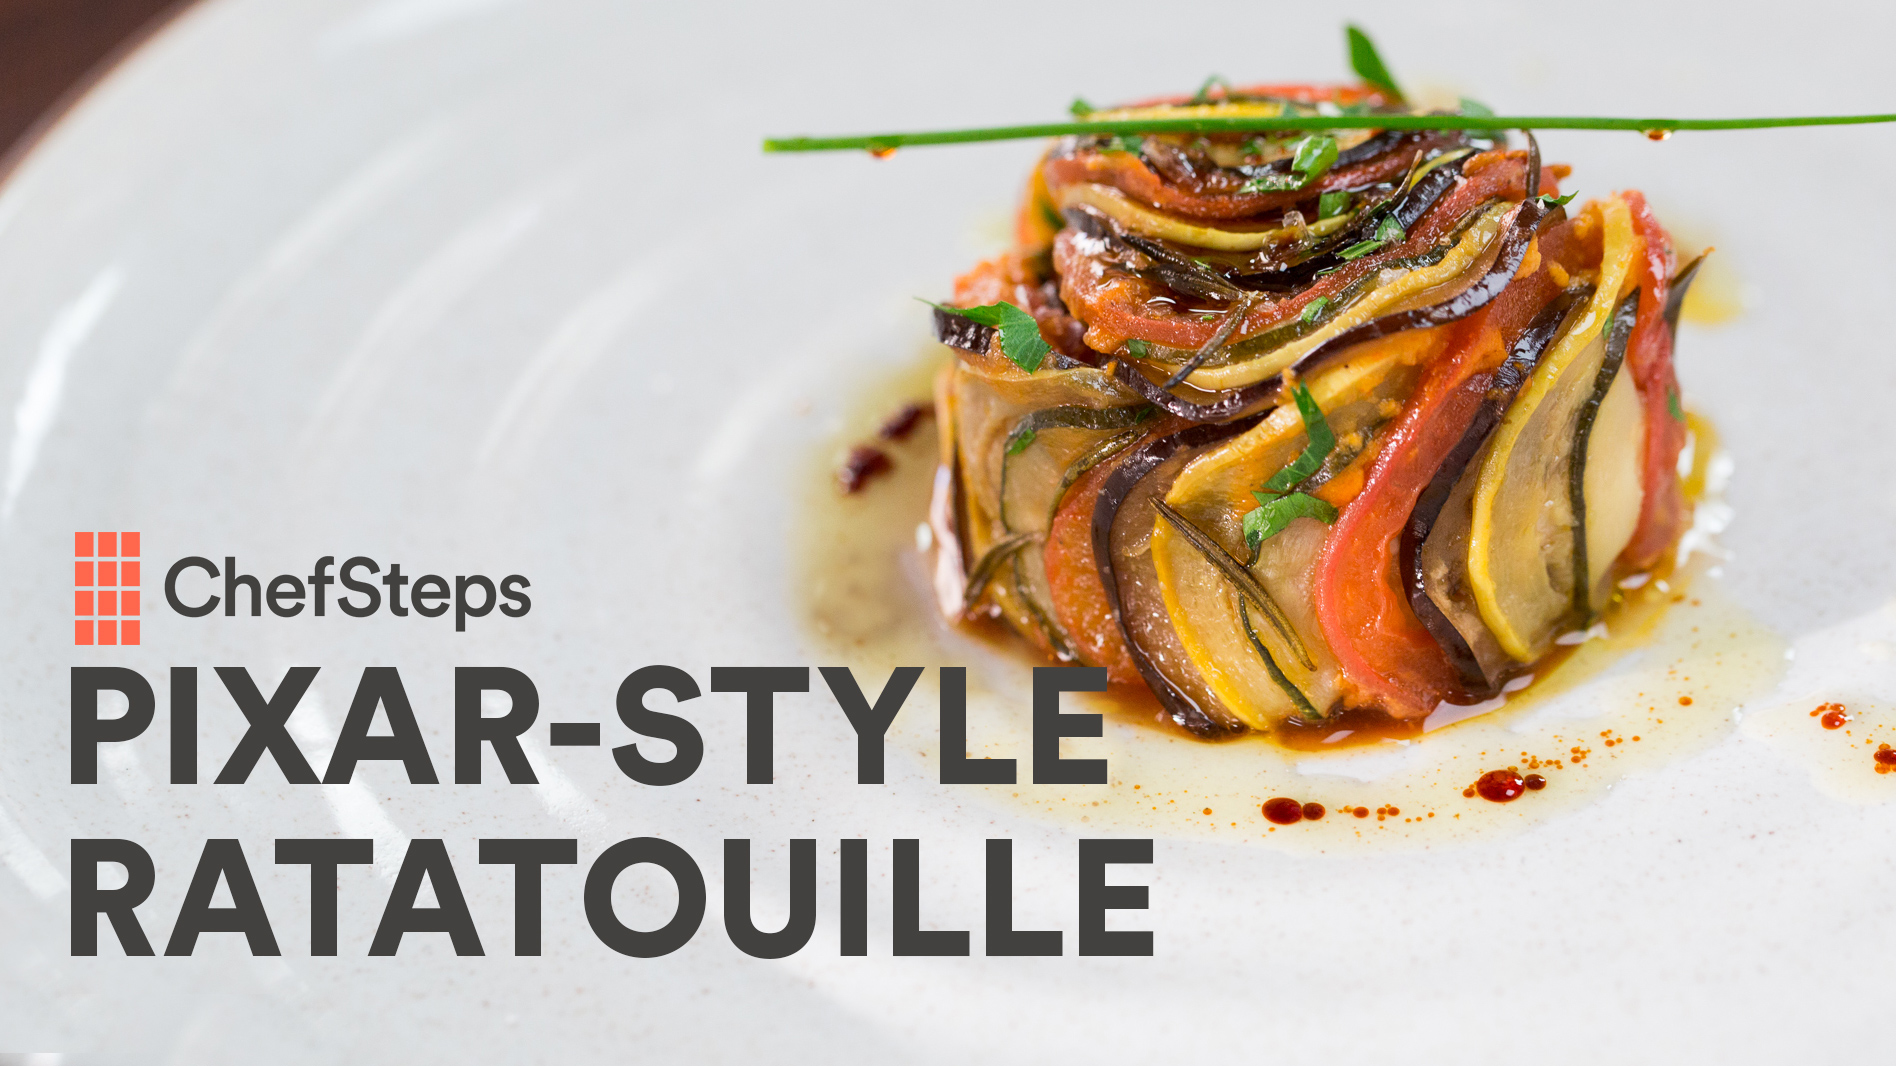 Get Creative with Pixar-Style Ratatouille | ChefSteps | PBS Food